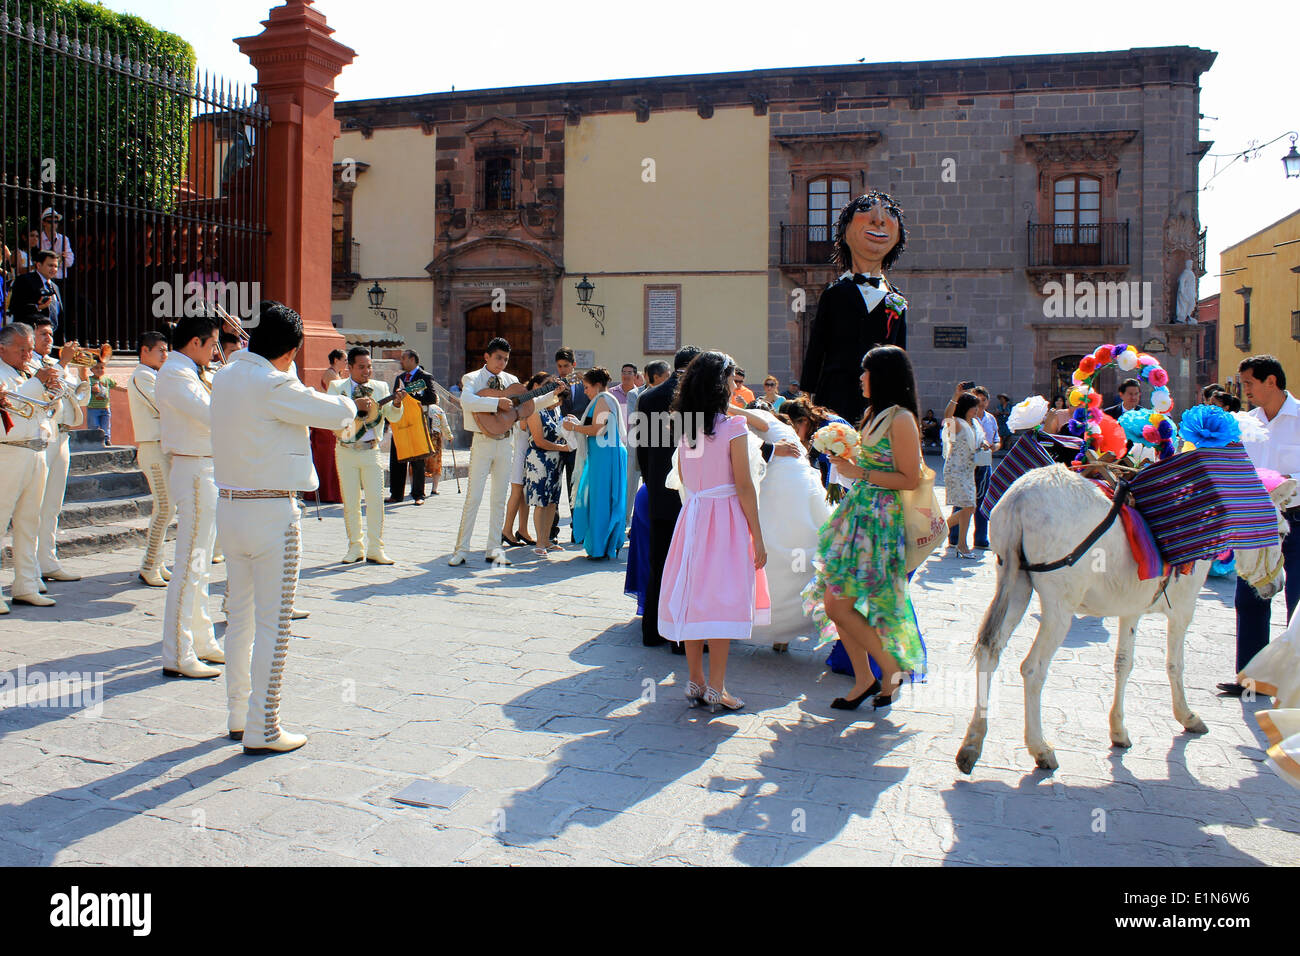 Mariachi band, giants and a donkey, all part of a wedding at San Miguel de Allende, Guanajuato, Mexico - Stock Image